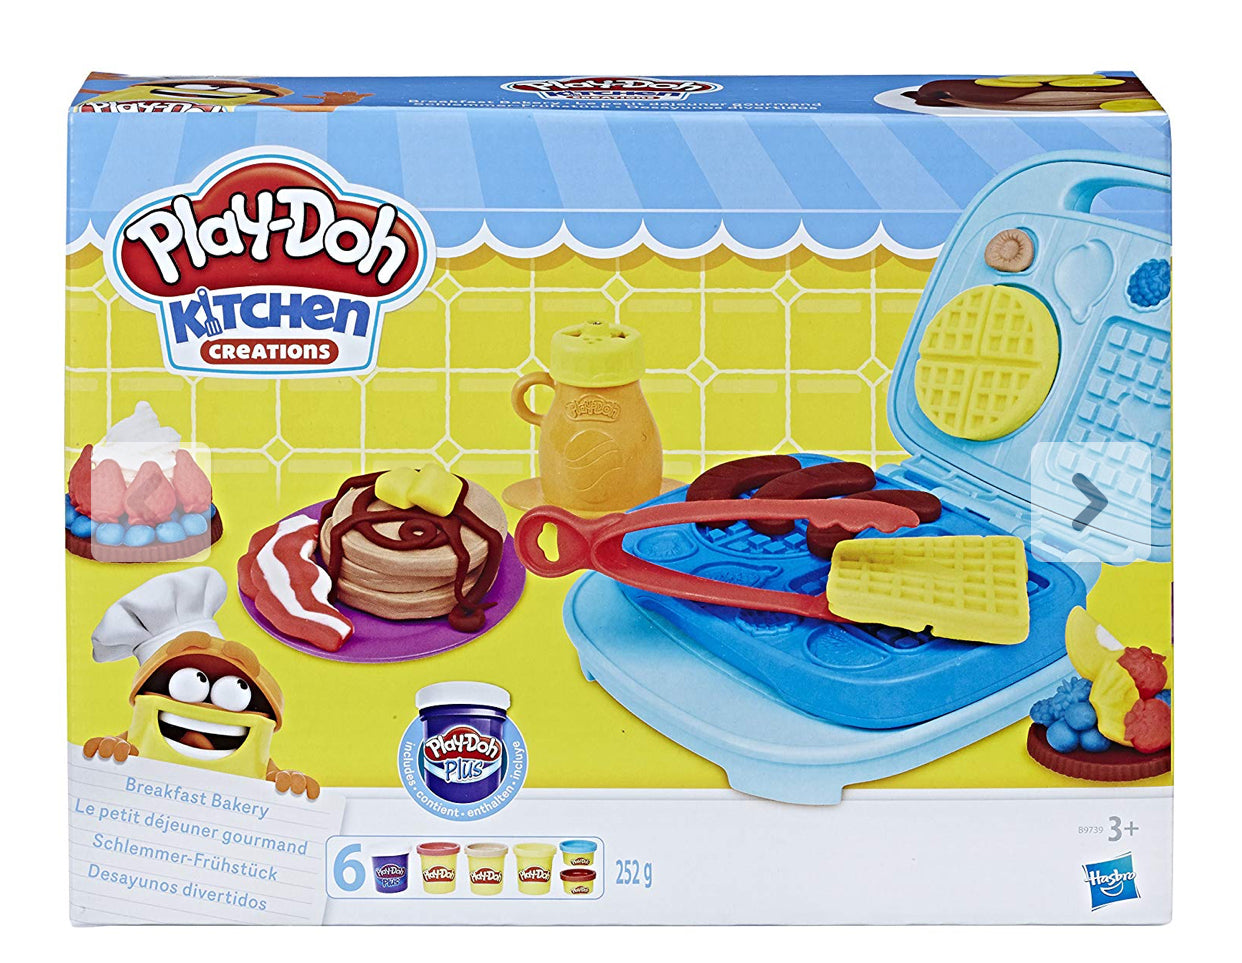 PLAY-DOH -  Kitchen Creations - Breakfast Bakery - 6 Cans - NEW!